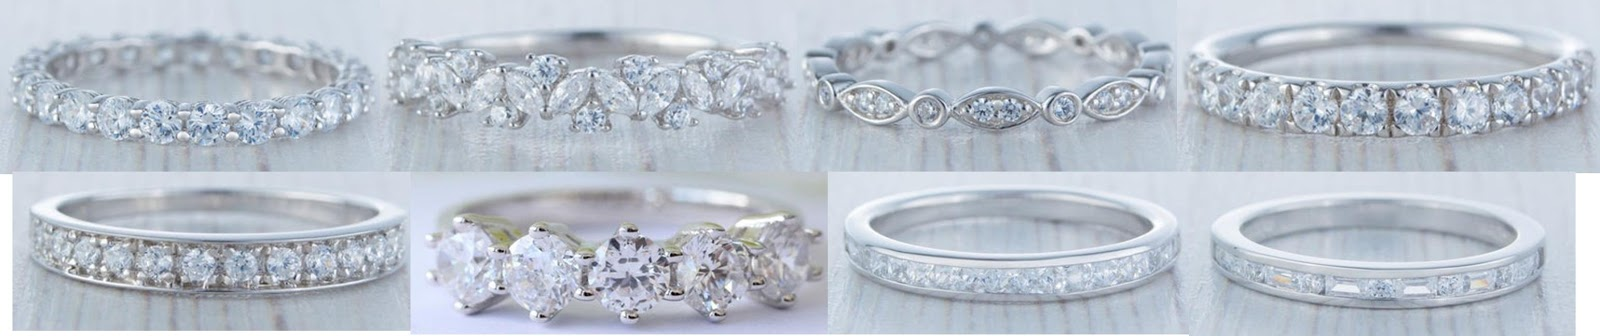 cheap wedding rings from Etsy